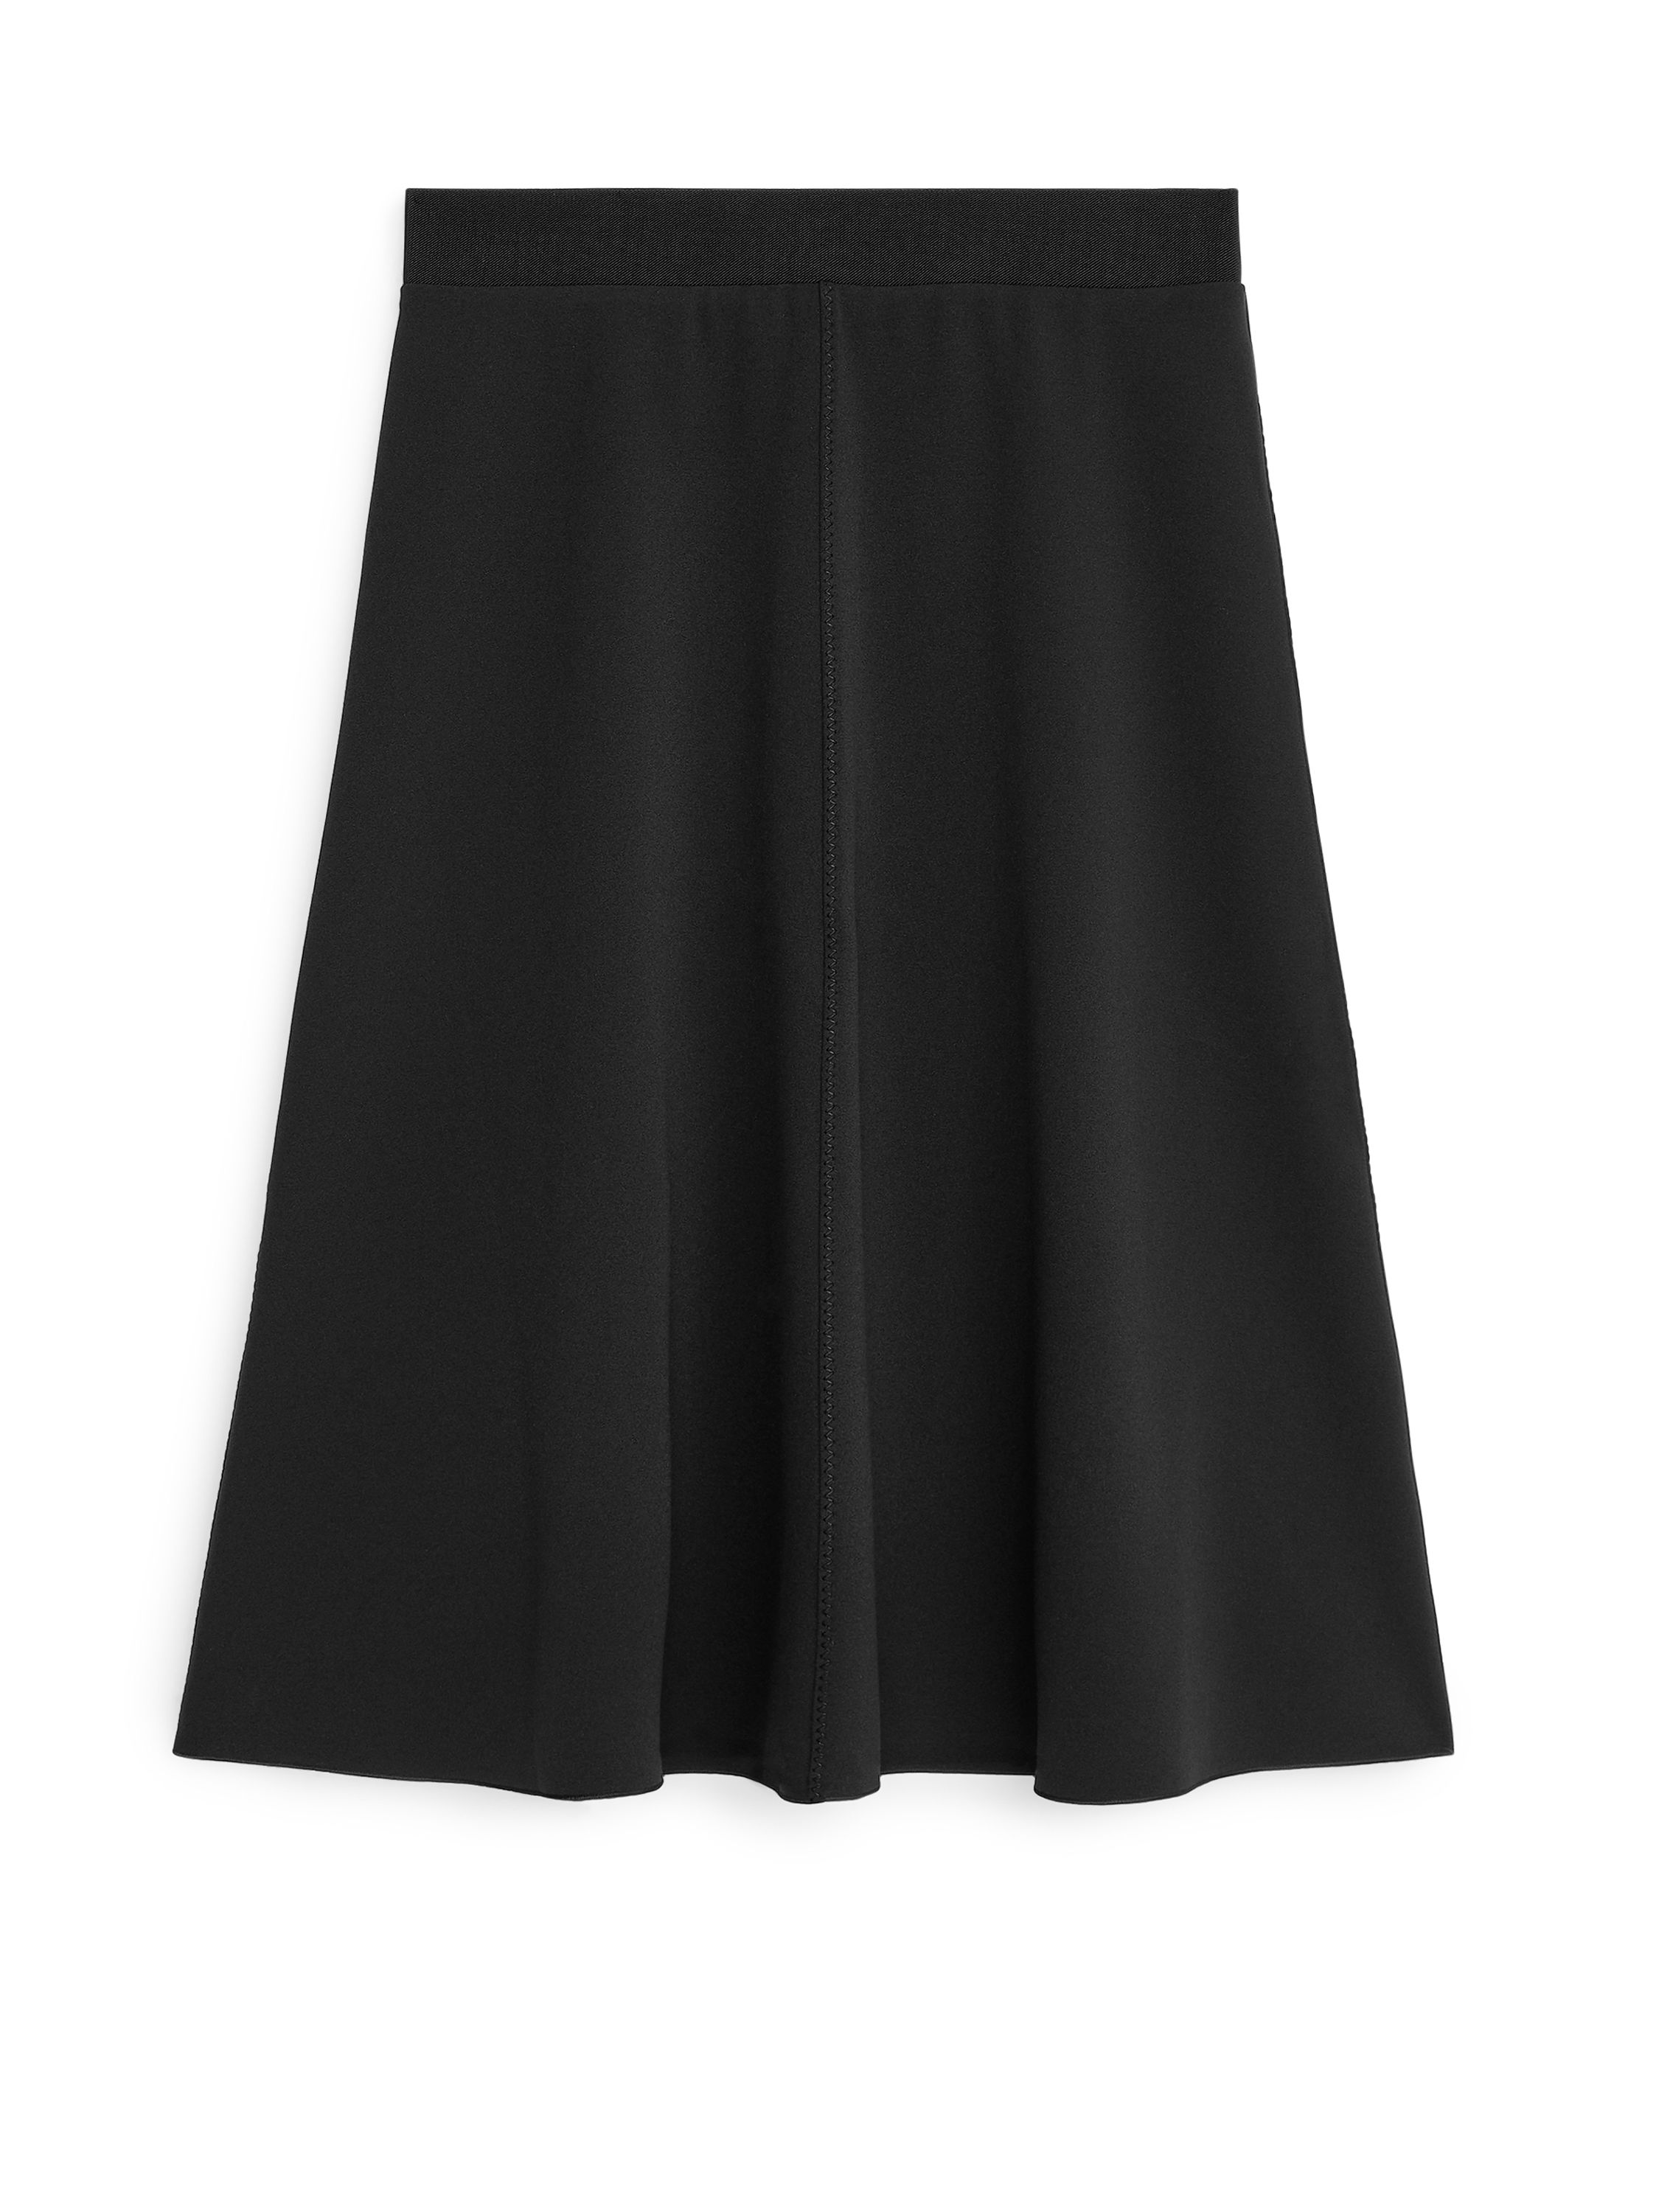 Fabric Swatch image of Arket stretch crepe a-line skirt in black